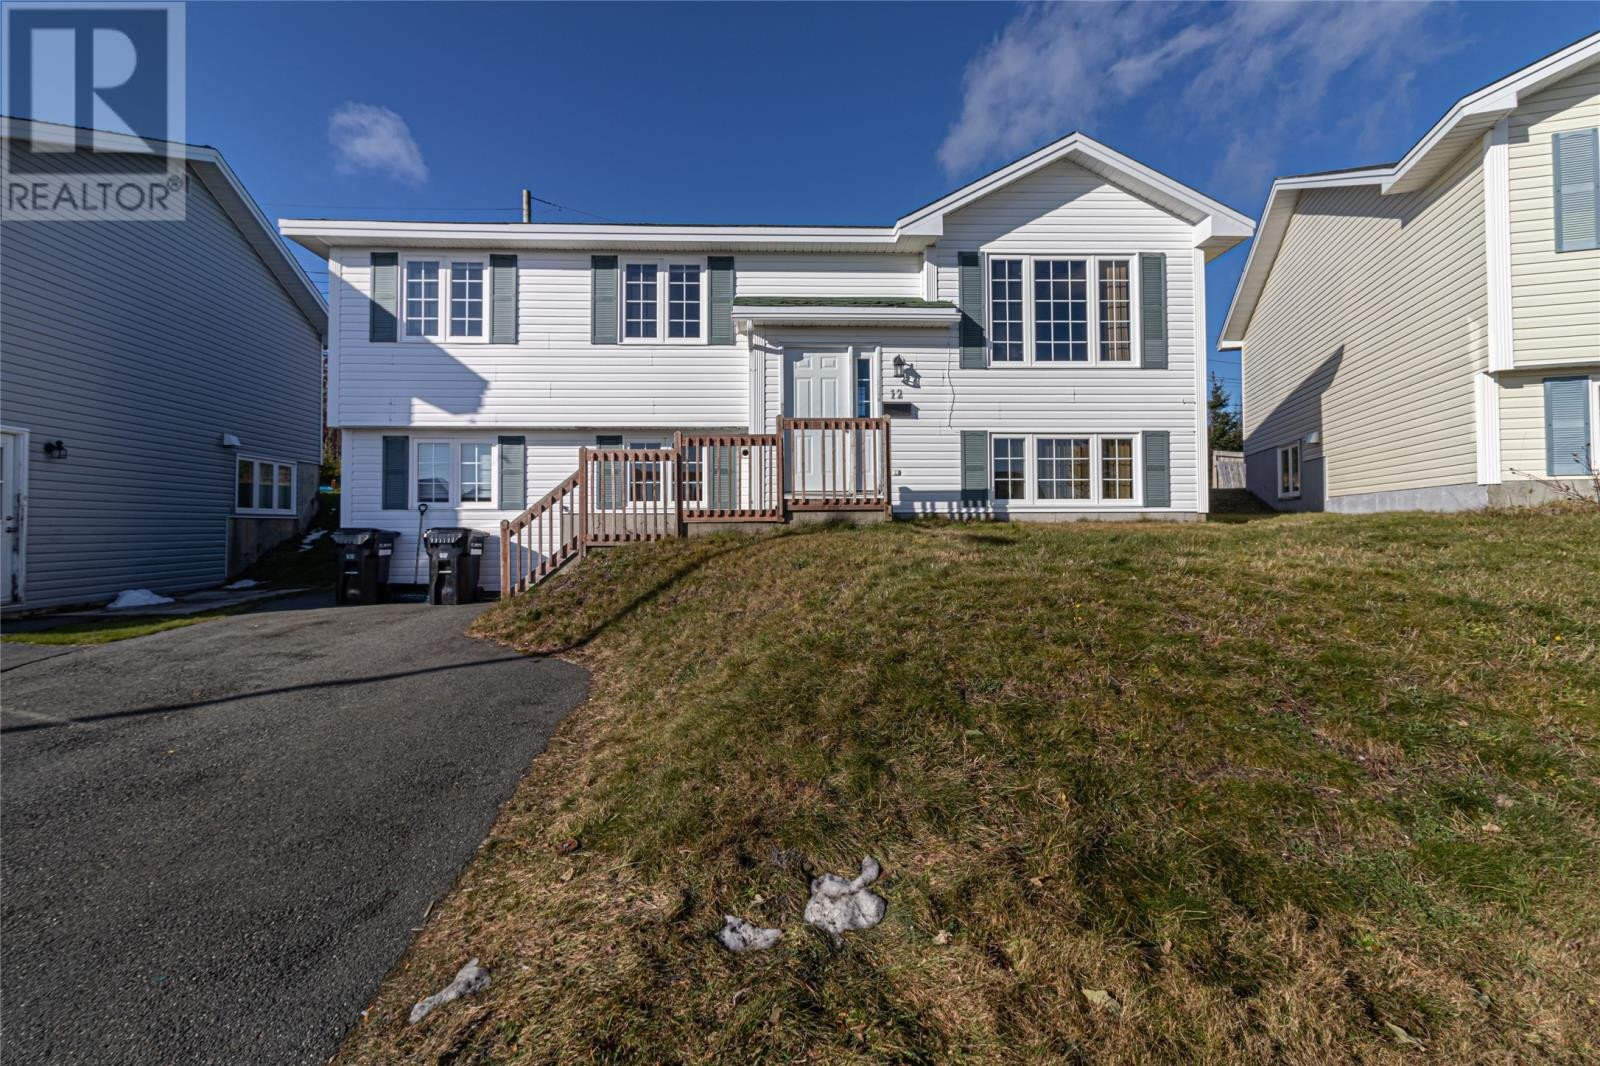 House for sale at 12 Kildare Pl St. John's Newfoundland - MLS: 1223533